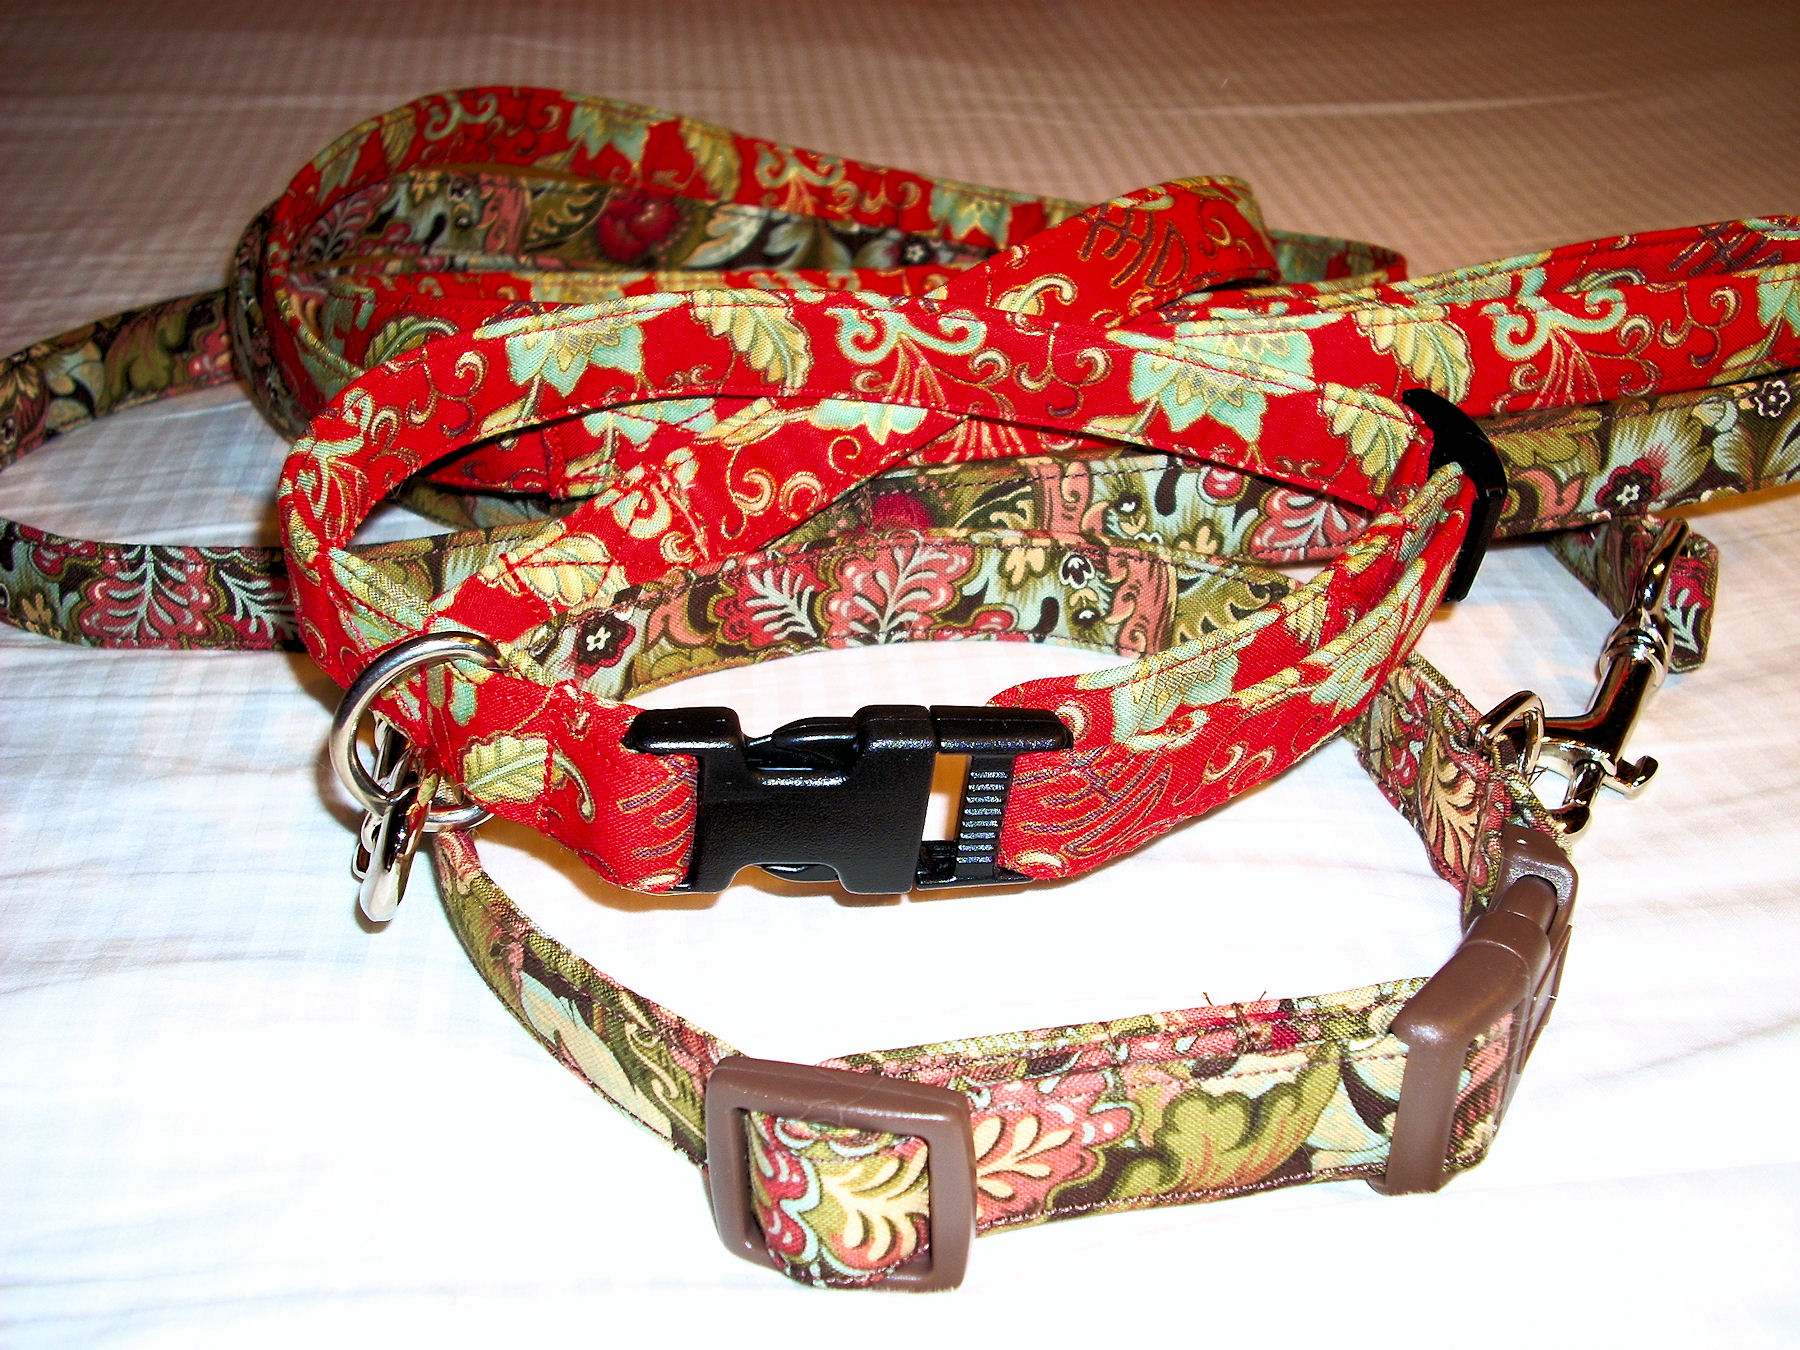 2012 Collars &amp; Leashes 1